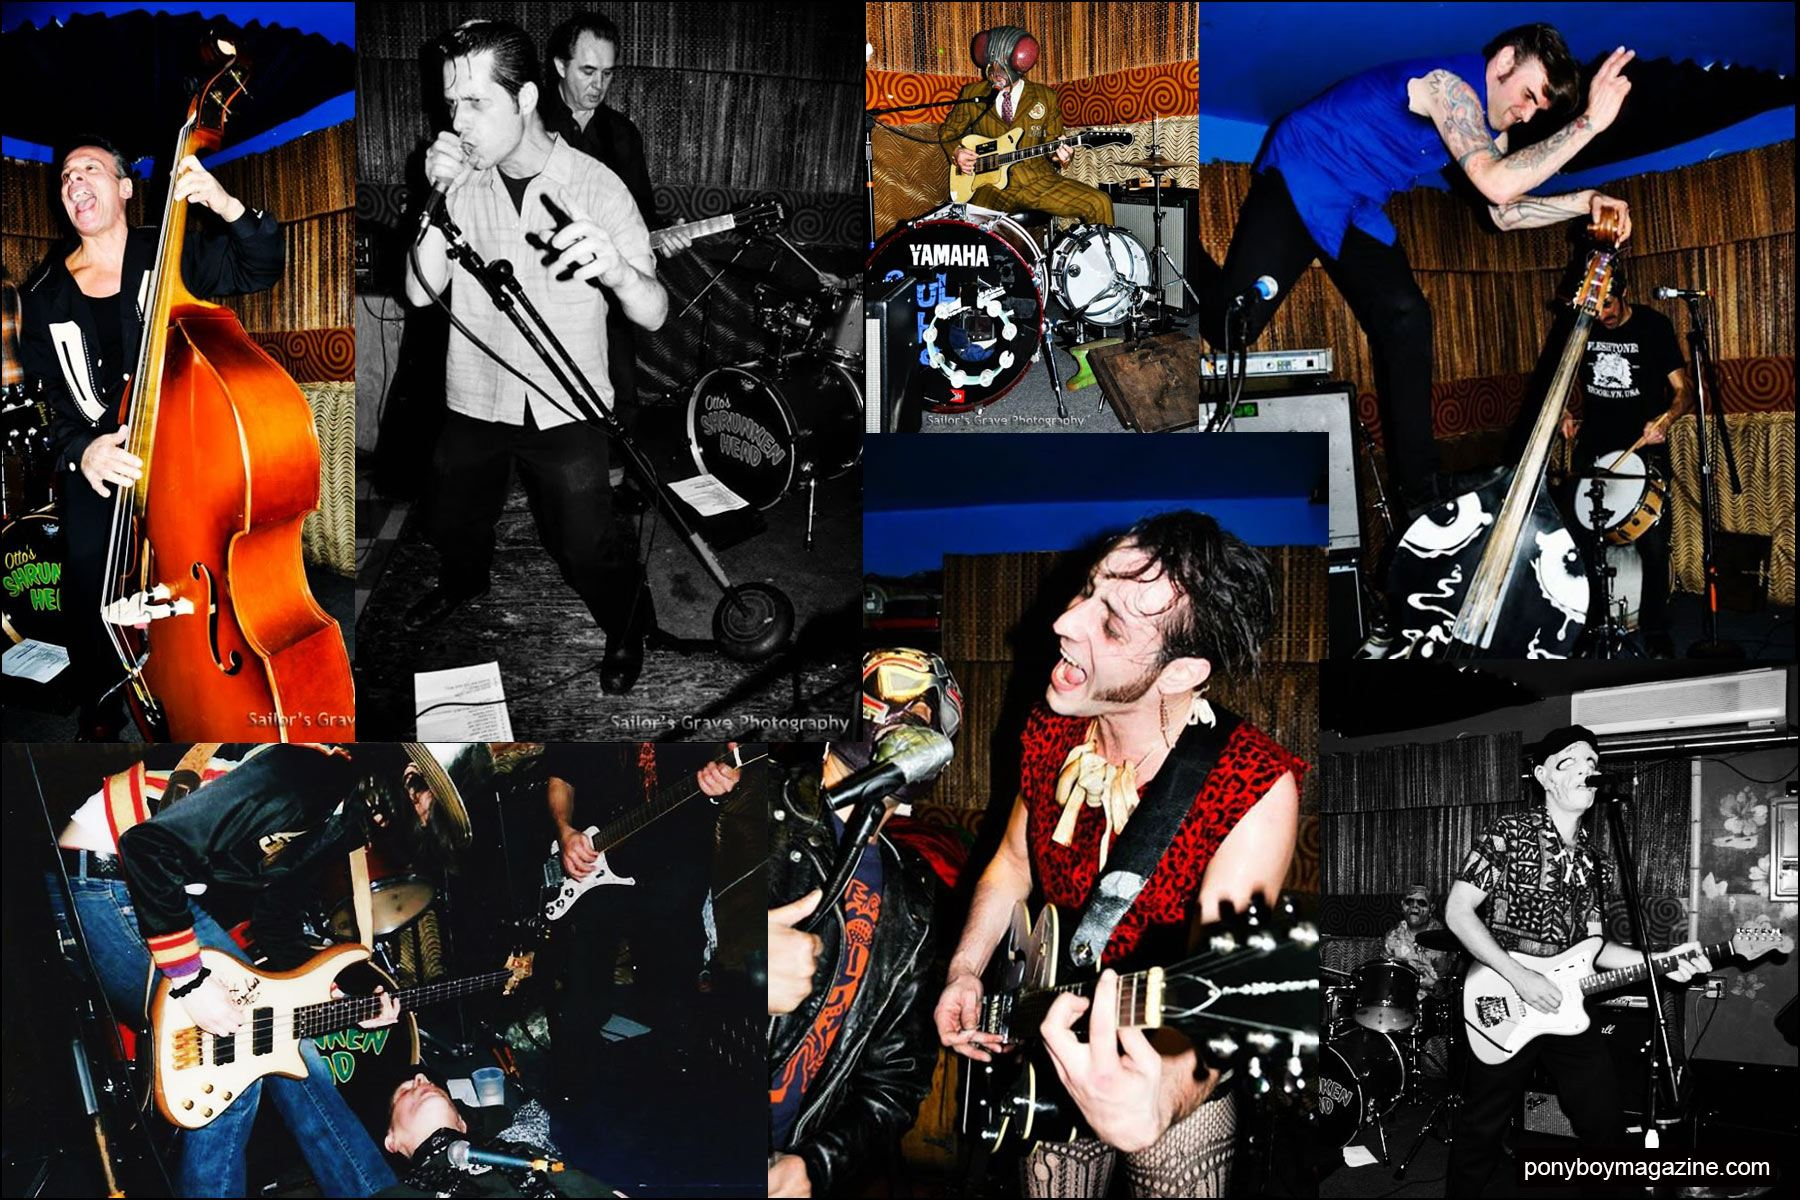 Photographs of rock 'n' roll bands that have played at New York City party Midnite Monster Hop. Ponyboy magazine NY.